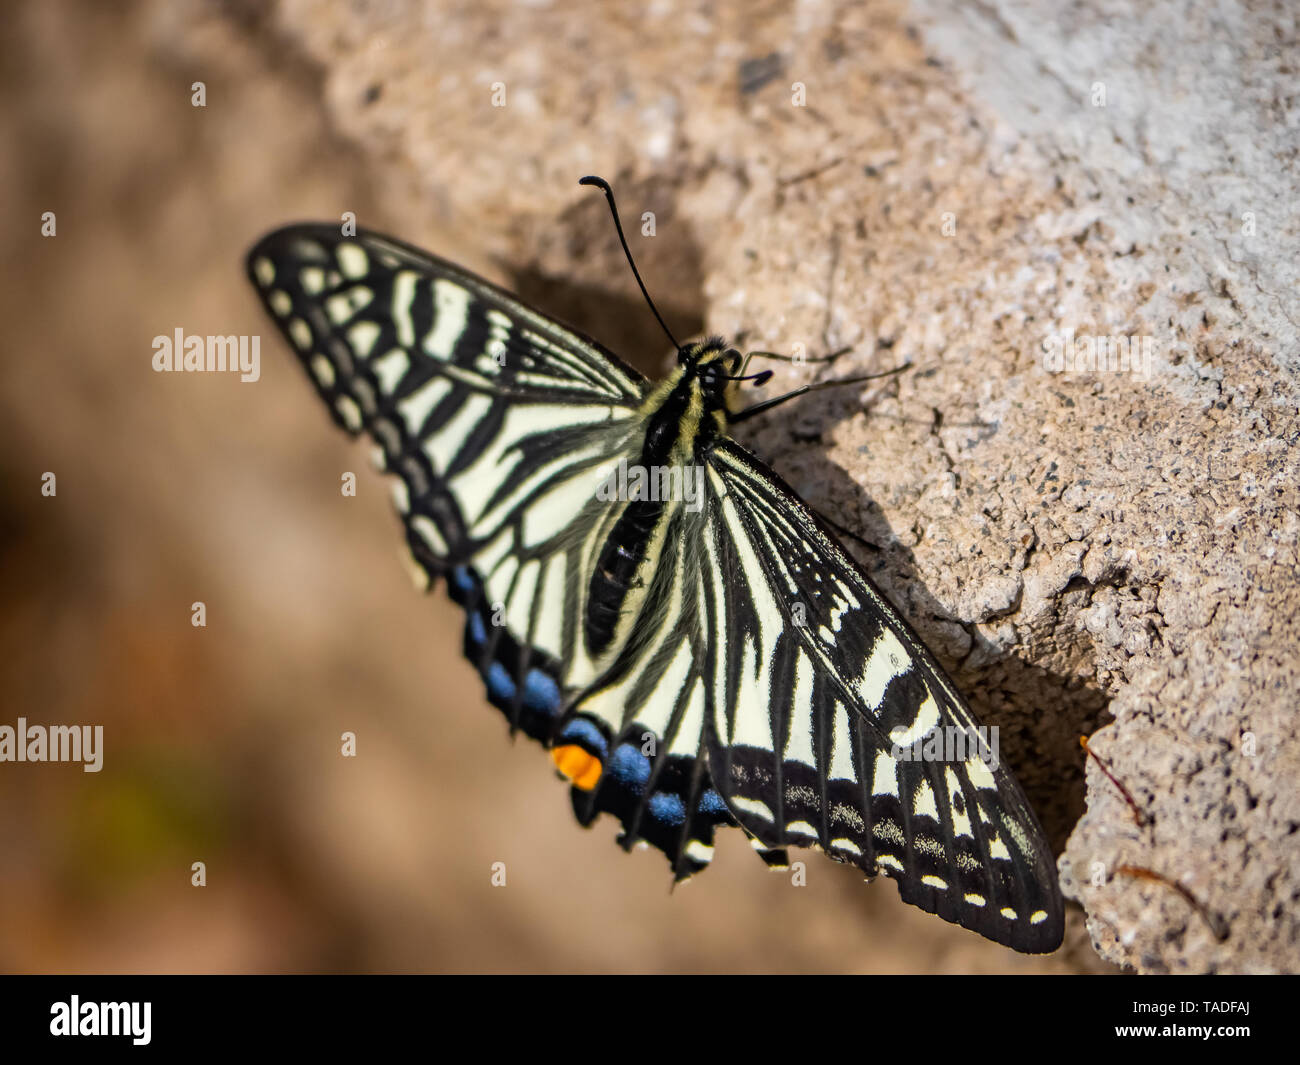 A chinese asian swallowtail butterfly, papilio xuthus, rests on the ground between feeding on flowers. Stock Photo